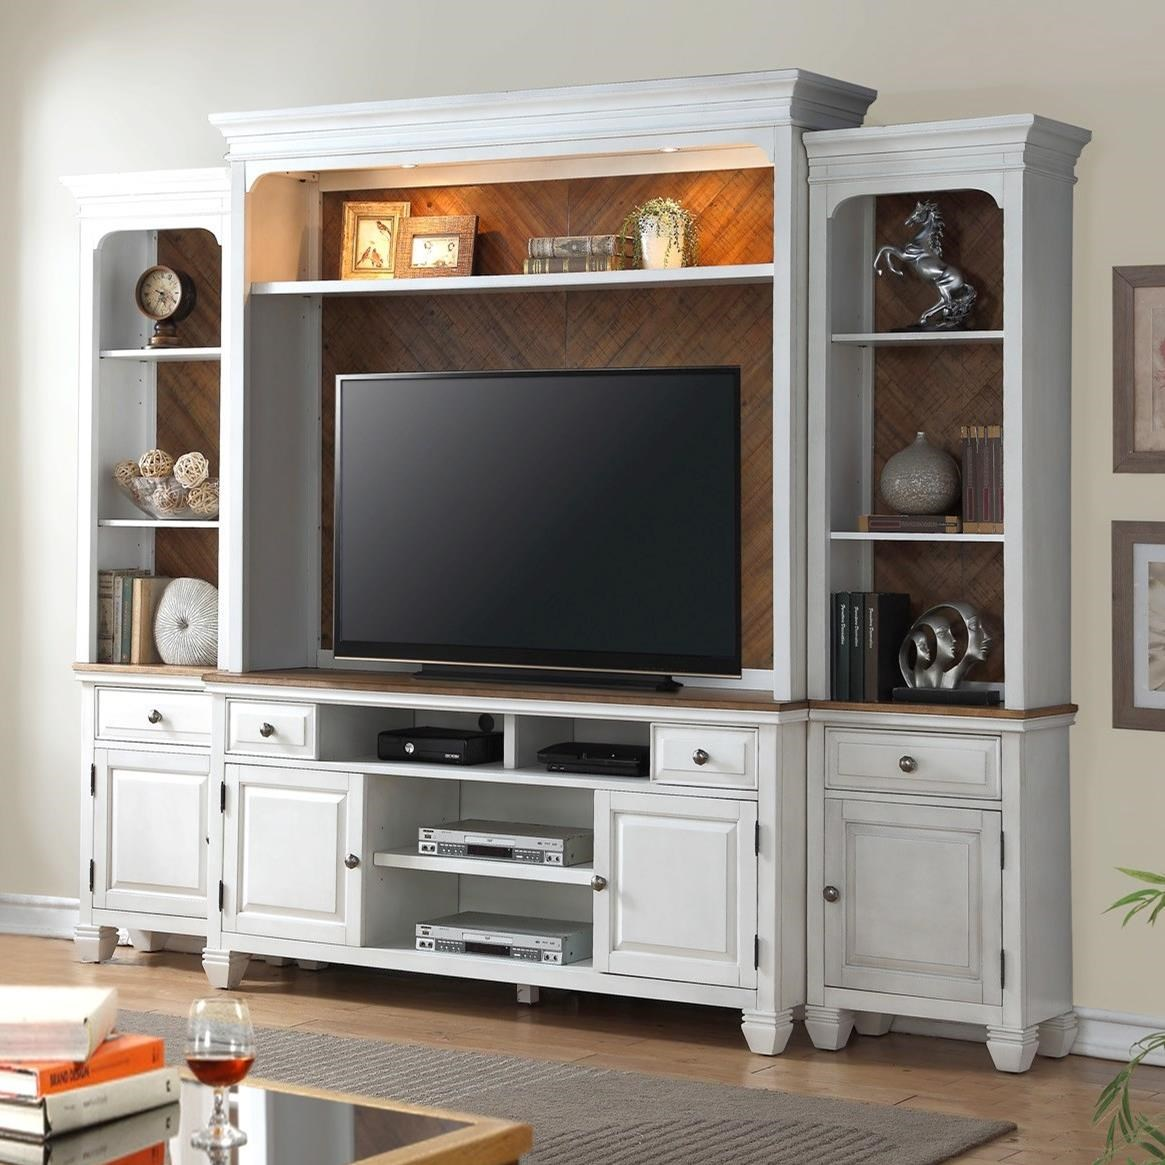 Legends Furniture Camden Collection Entertainment Wall Console - Item Number: ZCMD-1000